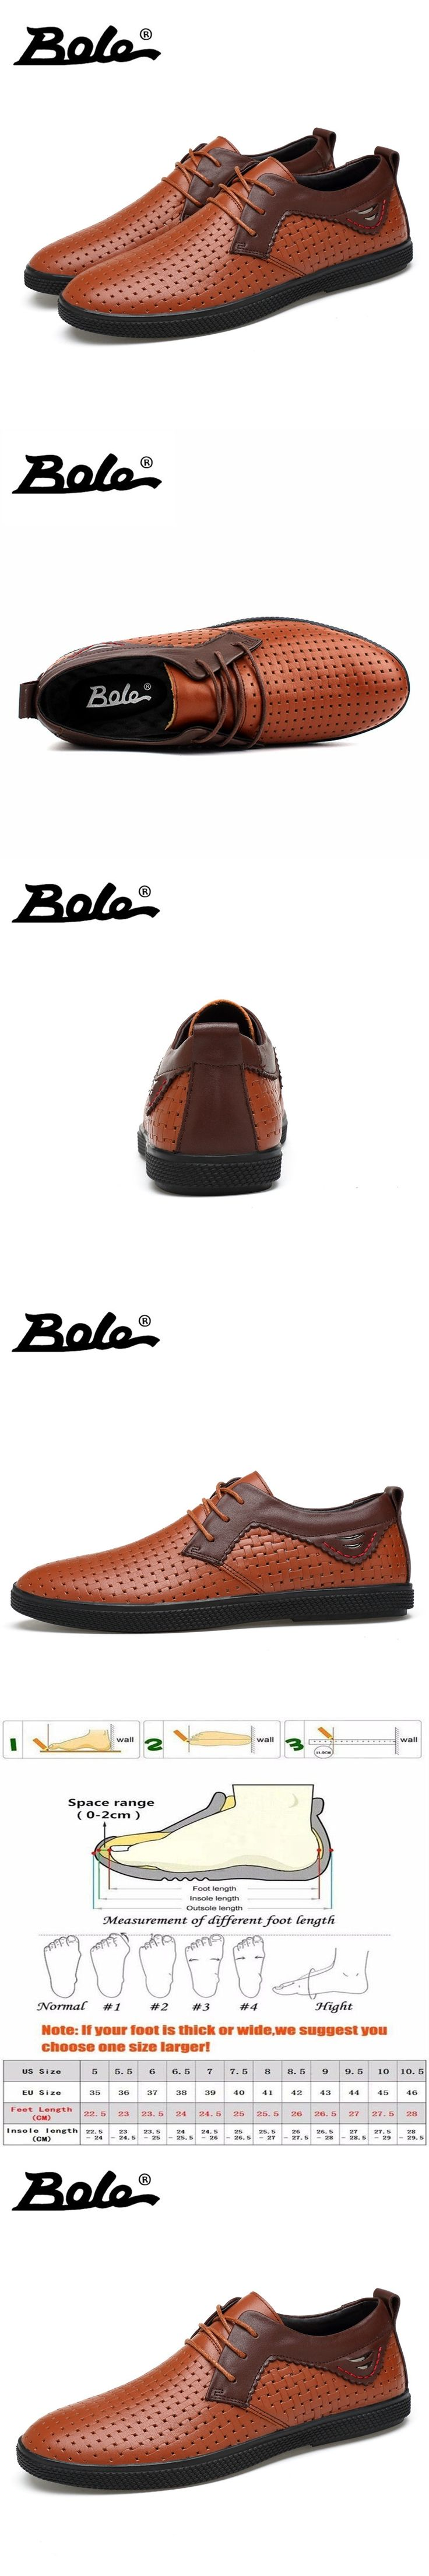 BOLE Summer New Punching Breathable Casual Shoes For Men Fashion Designer Handmade Genuine Leather Shoes Men Flats Driving Shoes